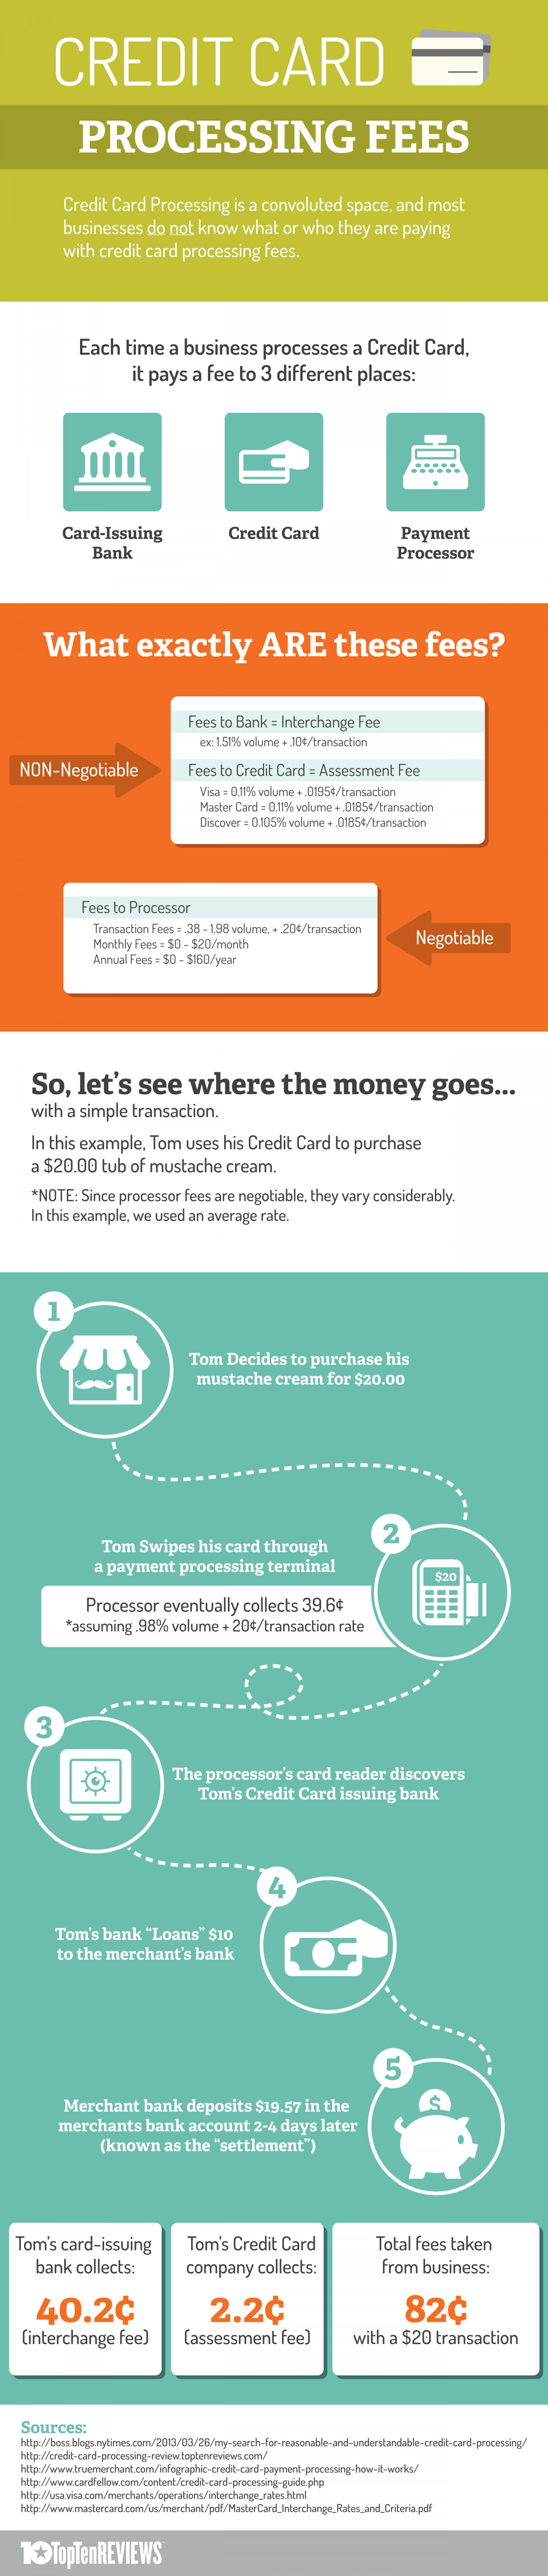 Credit Card Processing Fees Infographic